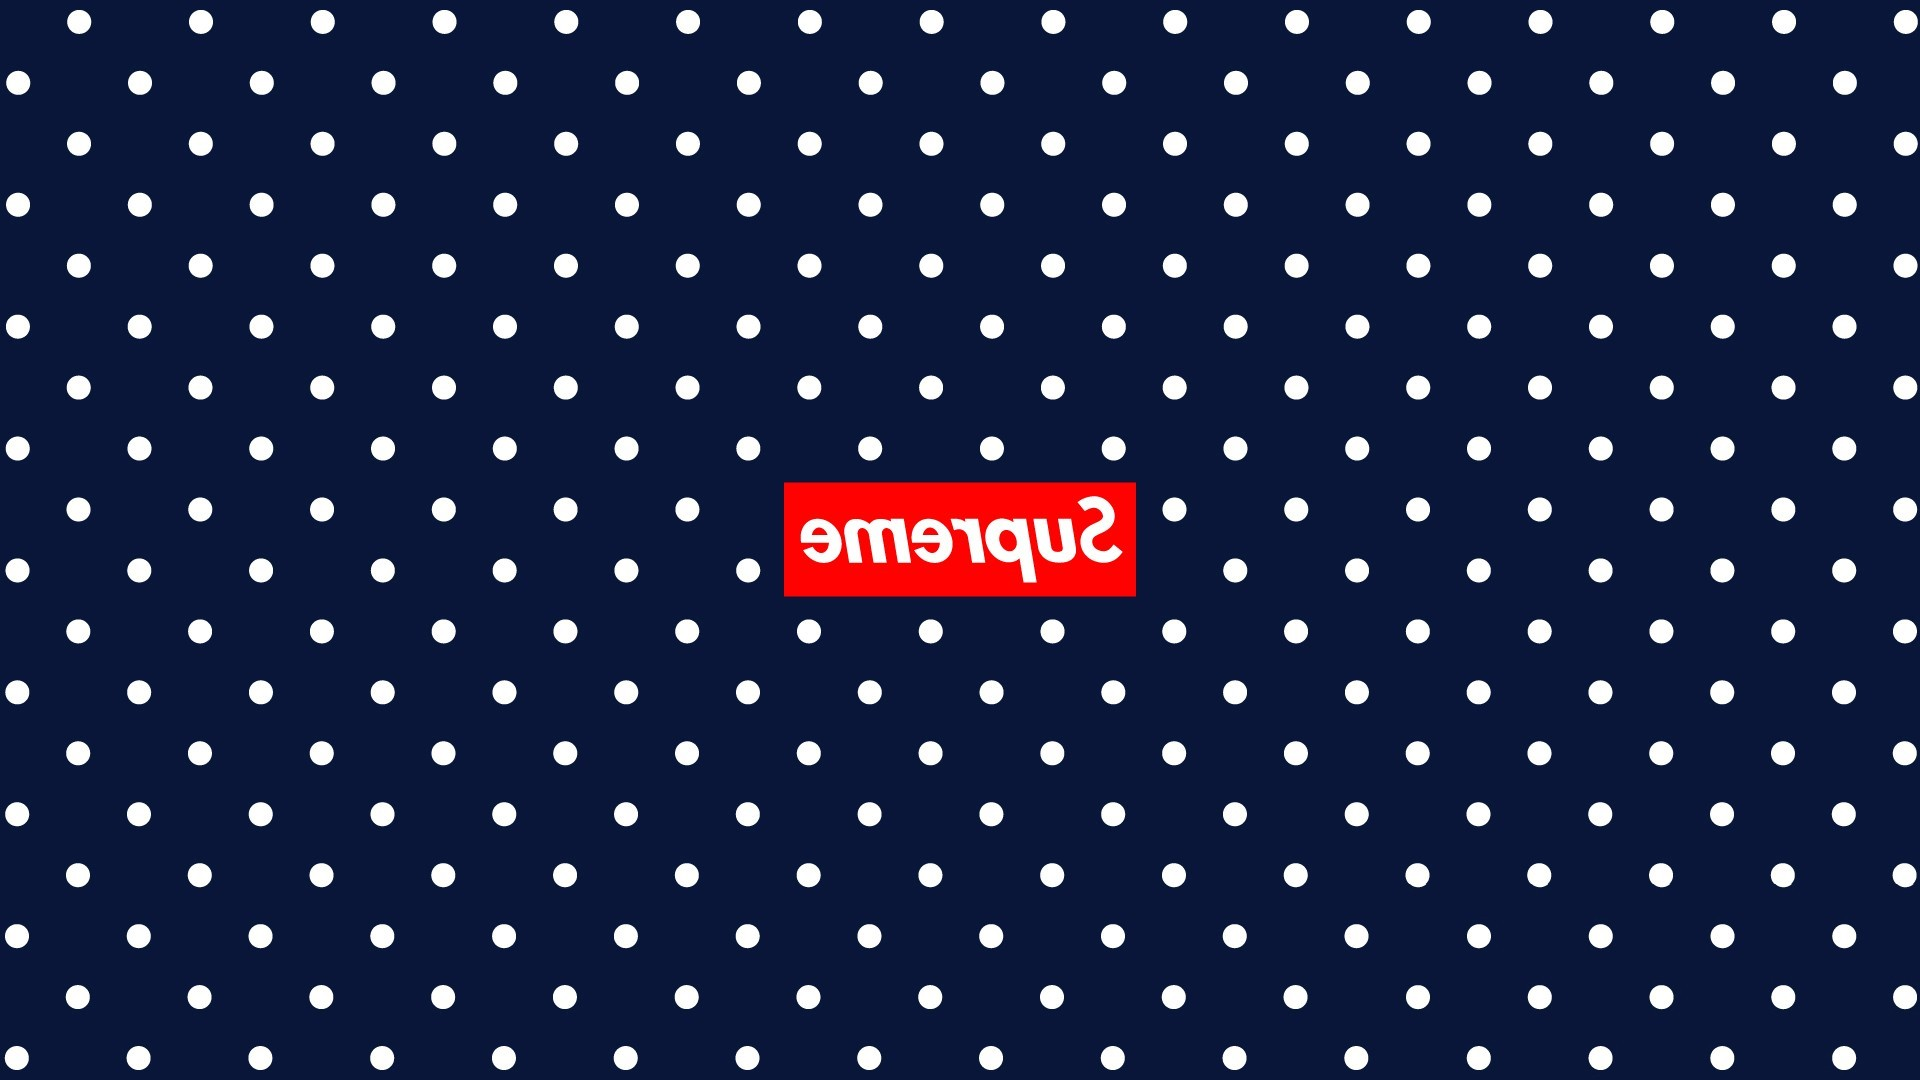 Supreme Wallpaper Ahoodie Iphone wallpaper – iphone Images – Frompo